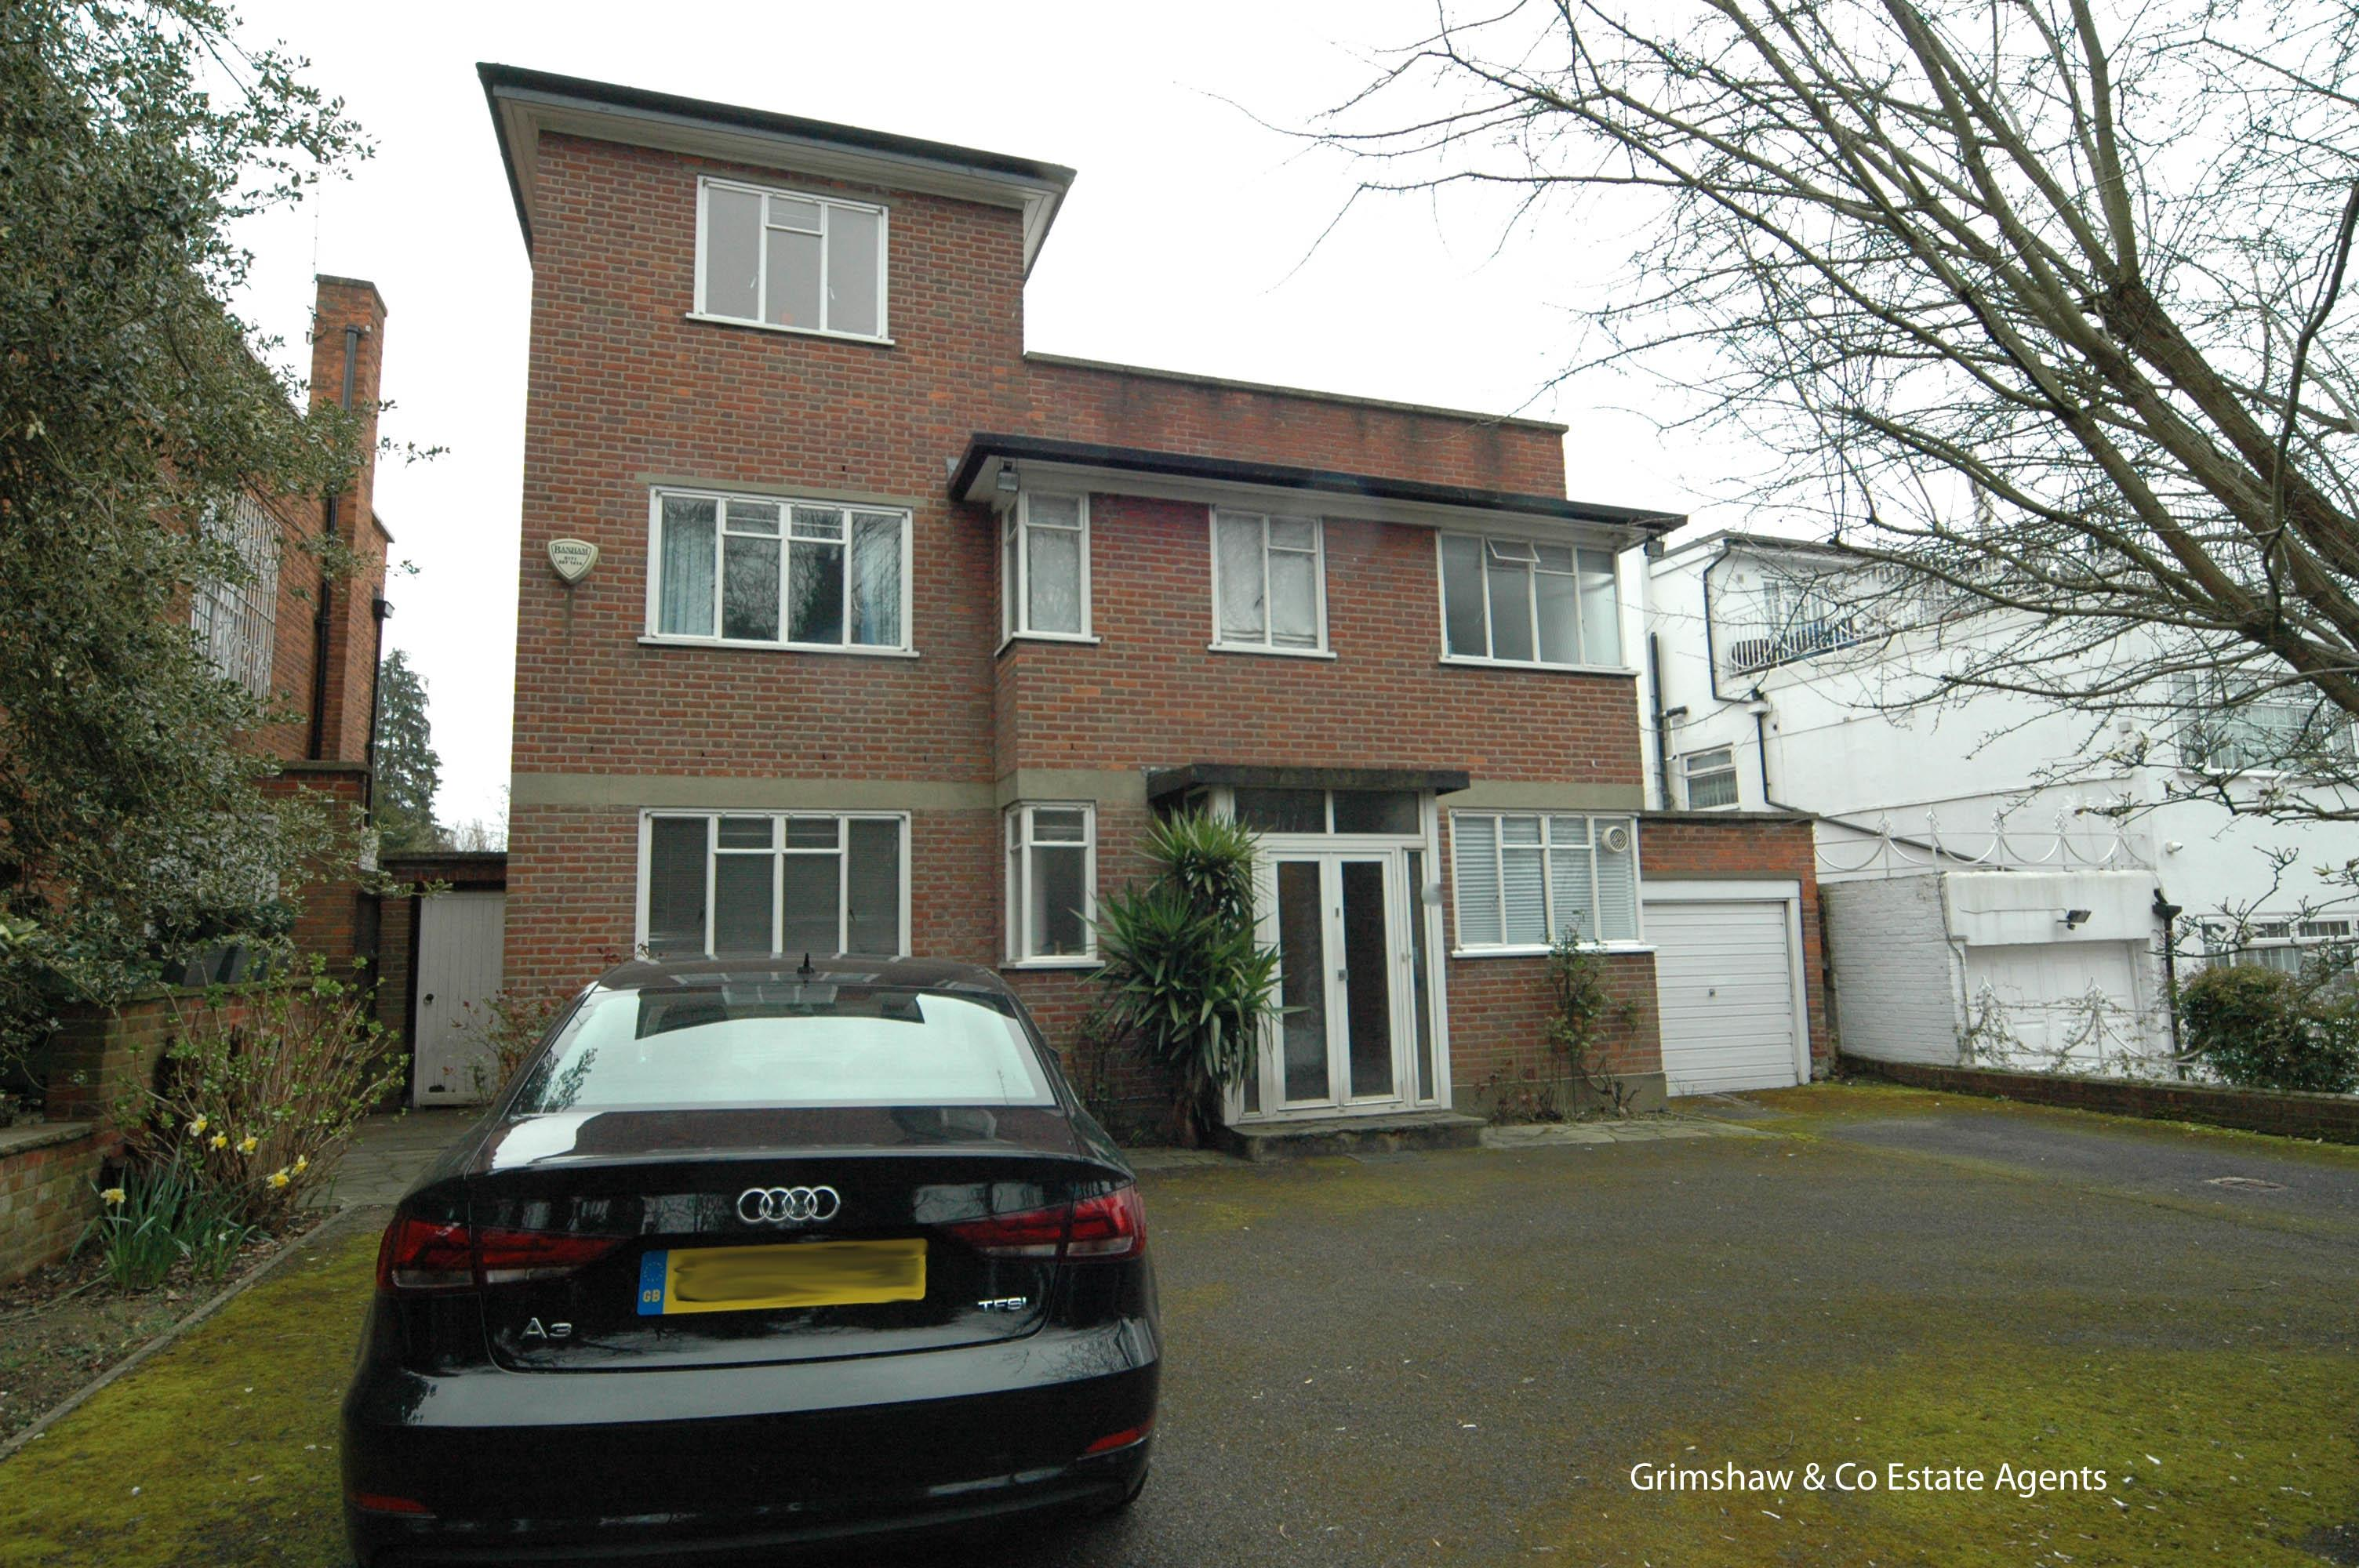 Sold - Hanger Lane, Haymills Estate